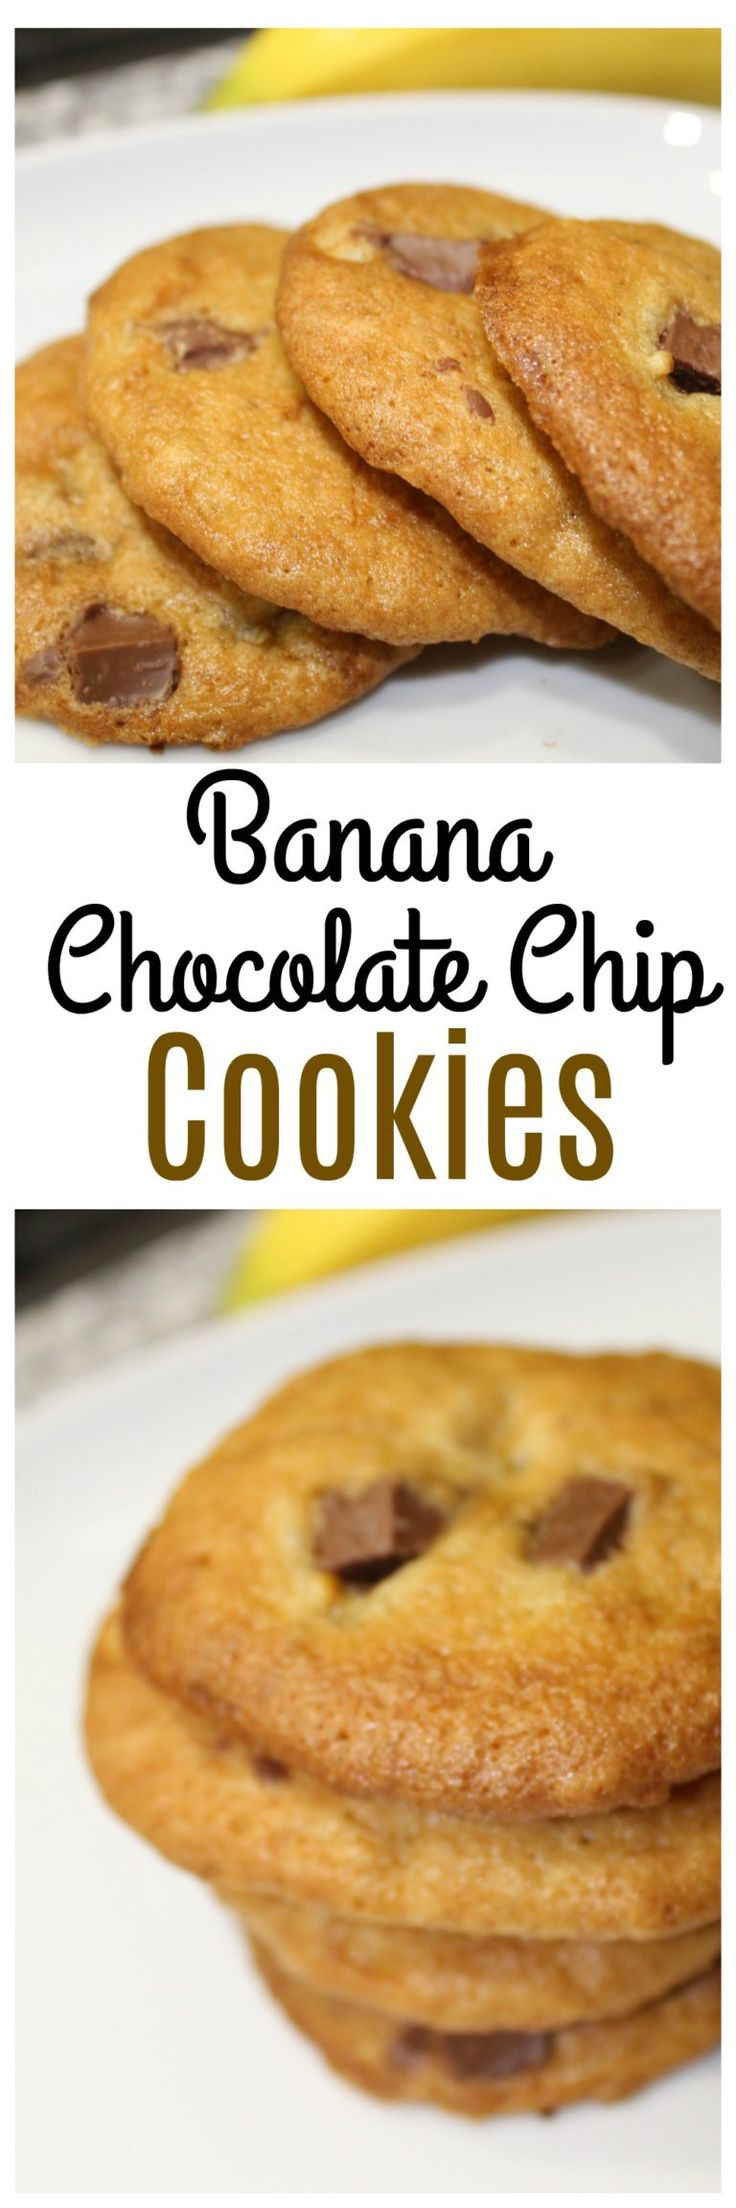 Simple and tasty Banana Chocolate Chip cookies are a nice combination of flavors - think of a chocolate covered banana in cookie form!     #banana #chocolatechip #cookies #recipe